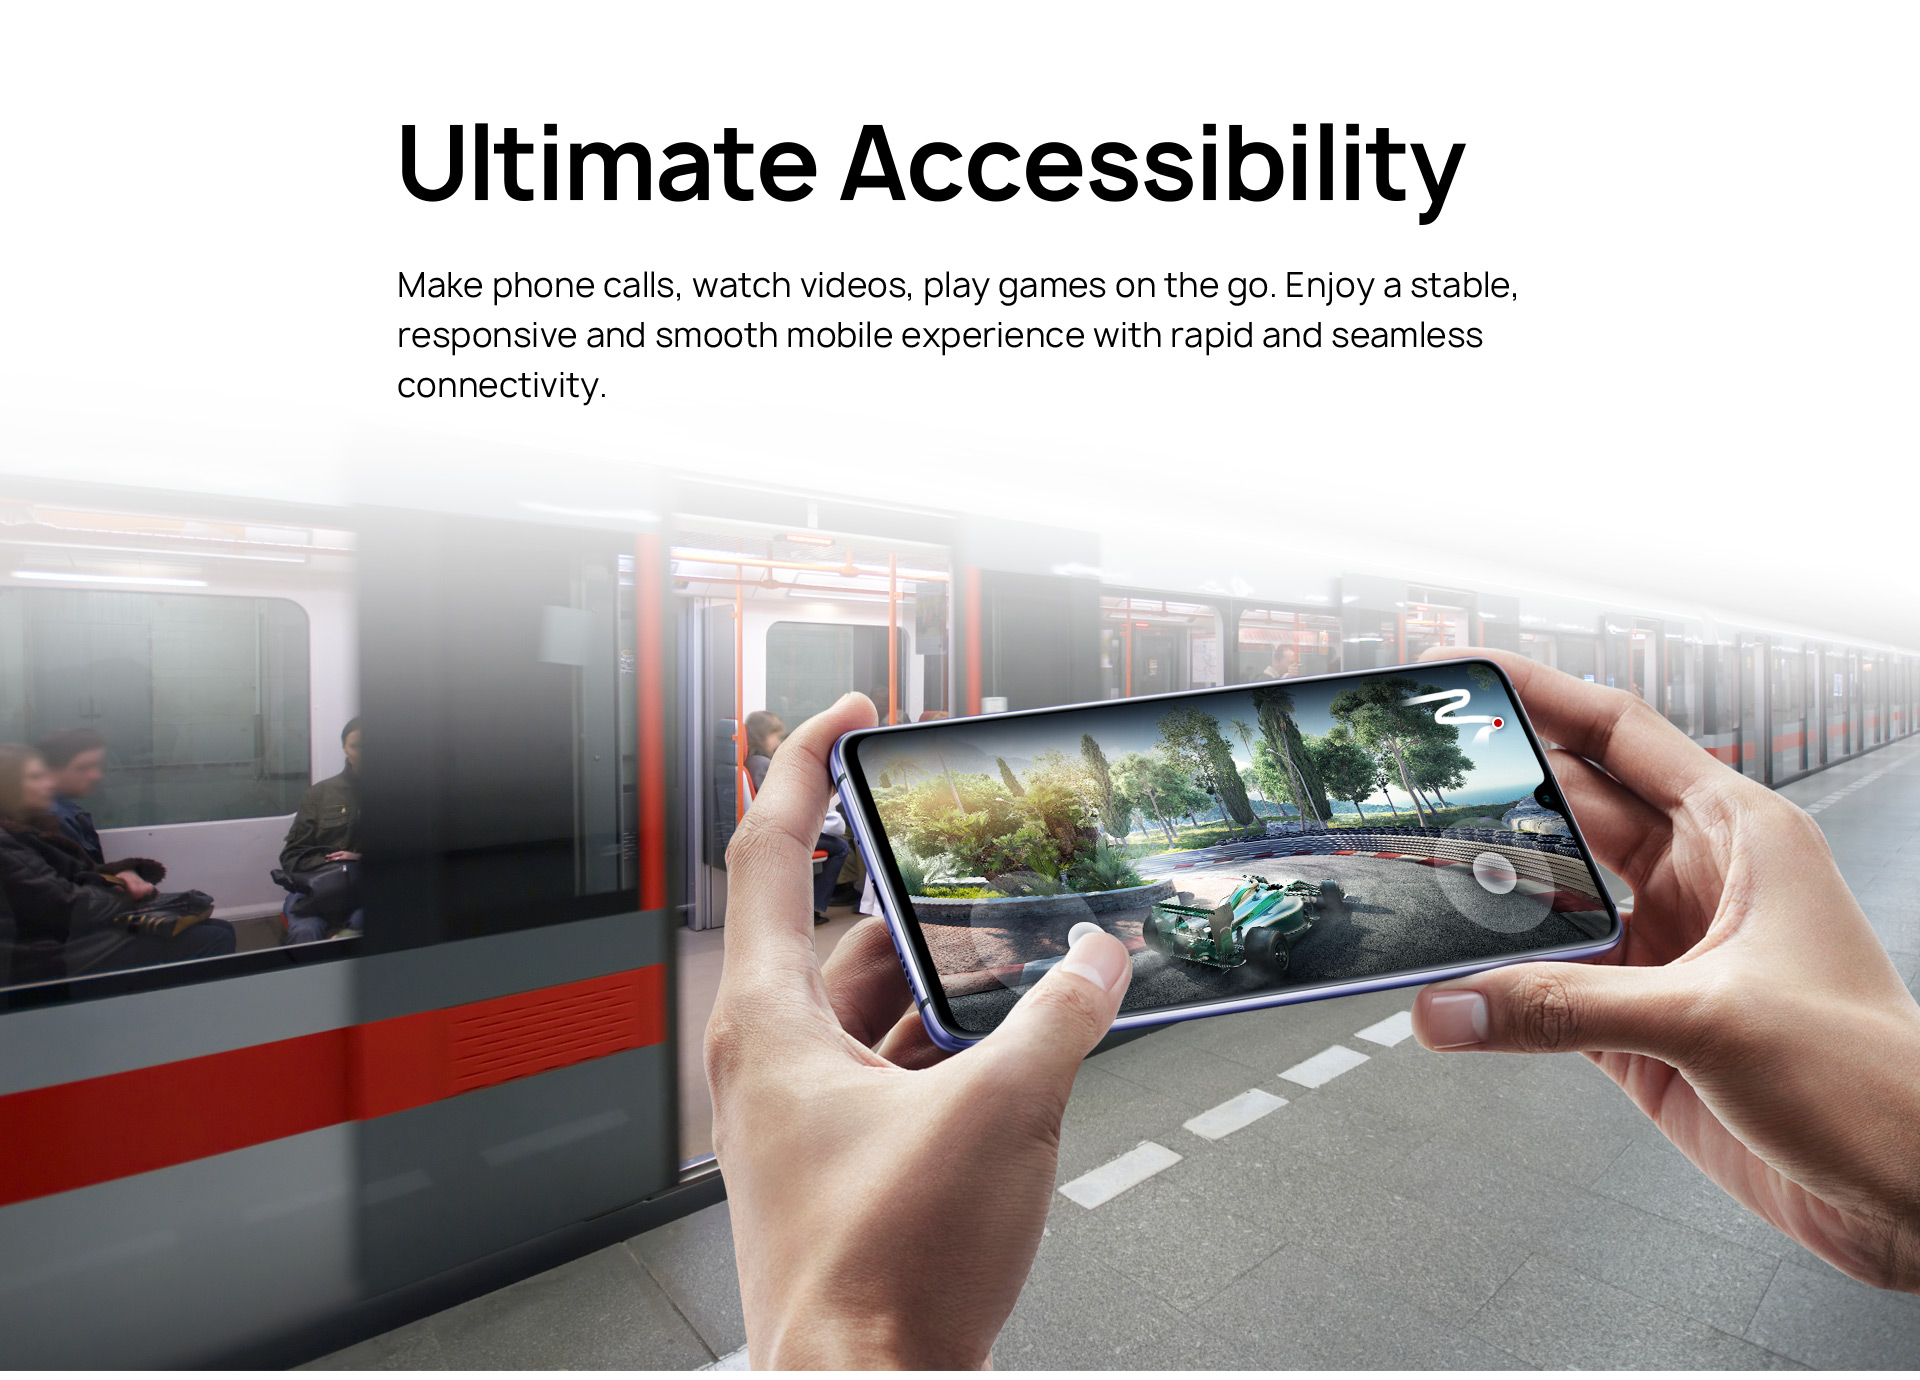 Huawei Mate 20 X Ultimate Accessibility